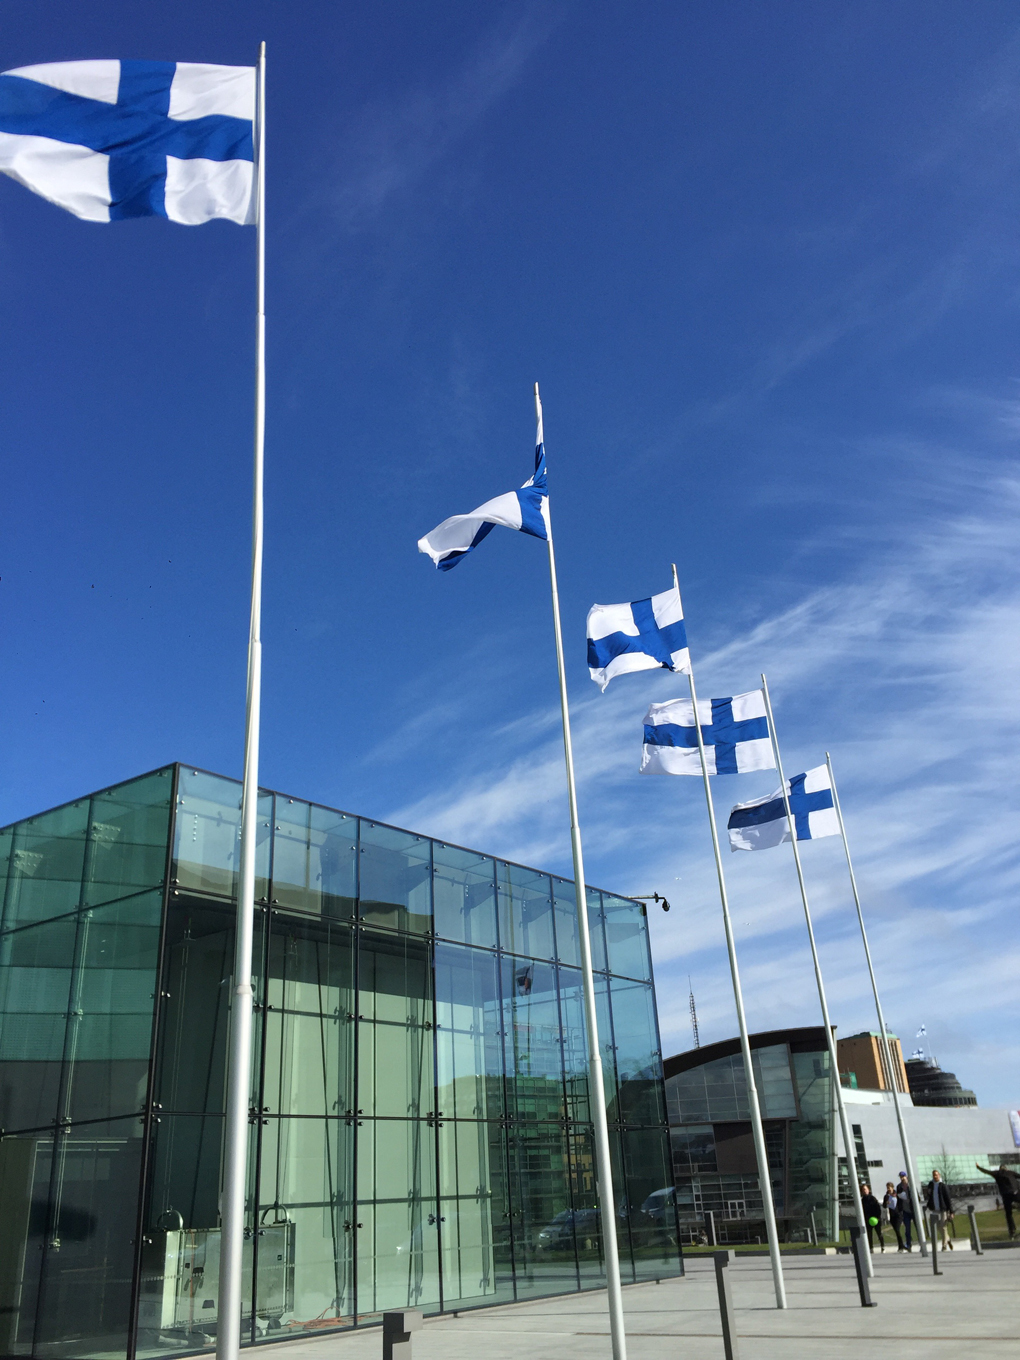 Finnish flags in a row outside a modern building